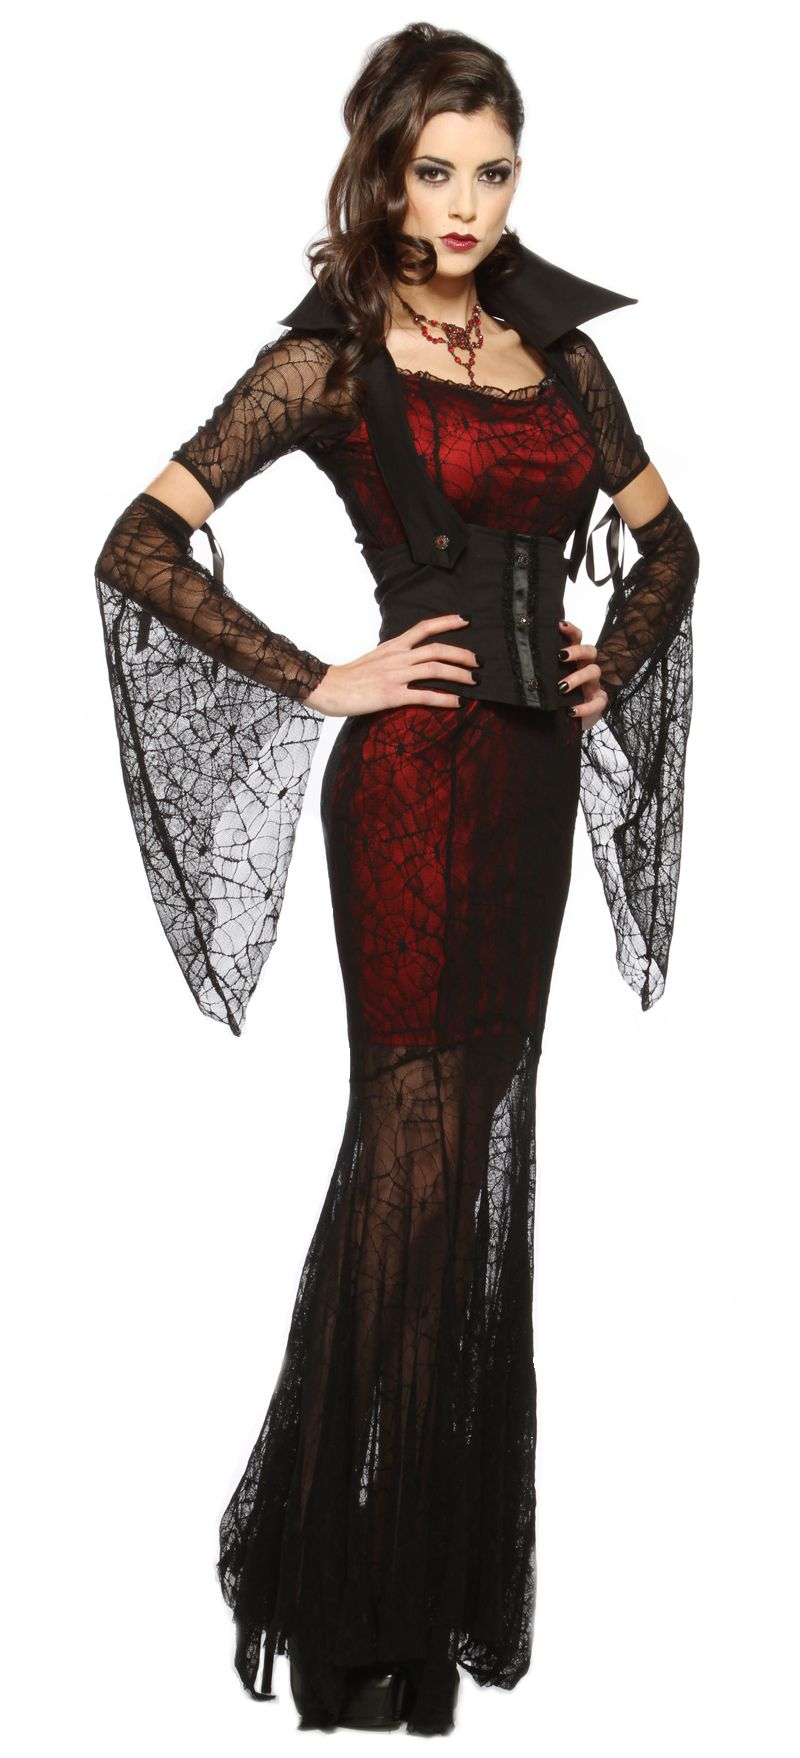 adult vampire costumes for women bing images love. Black Bedroom Furniture Sets. Home Design Ideas